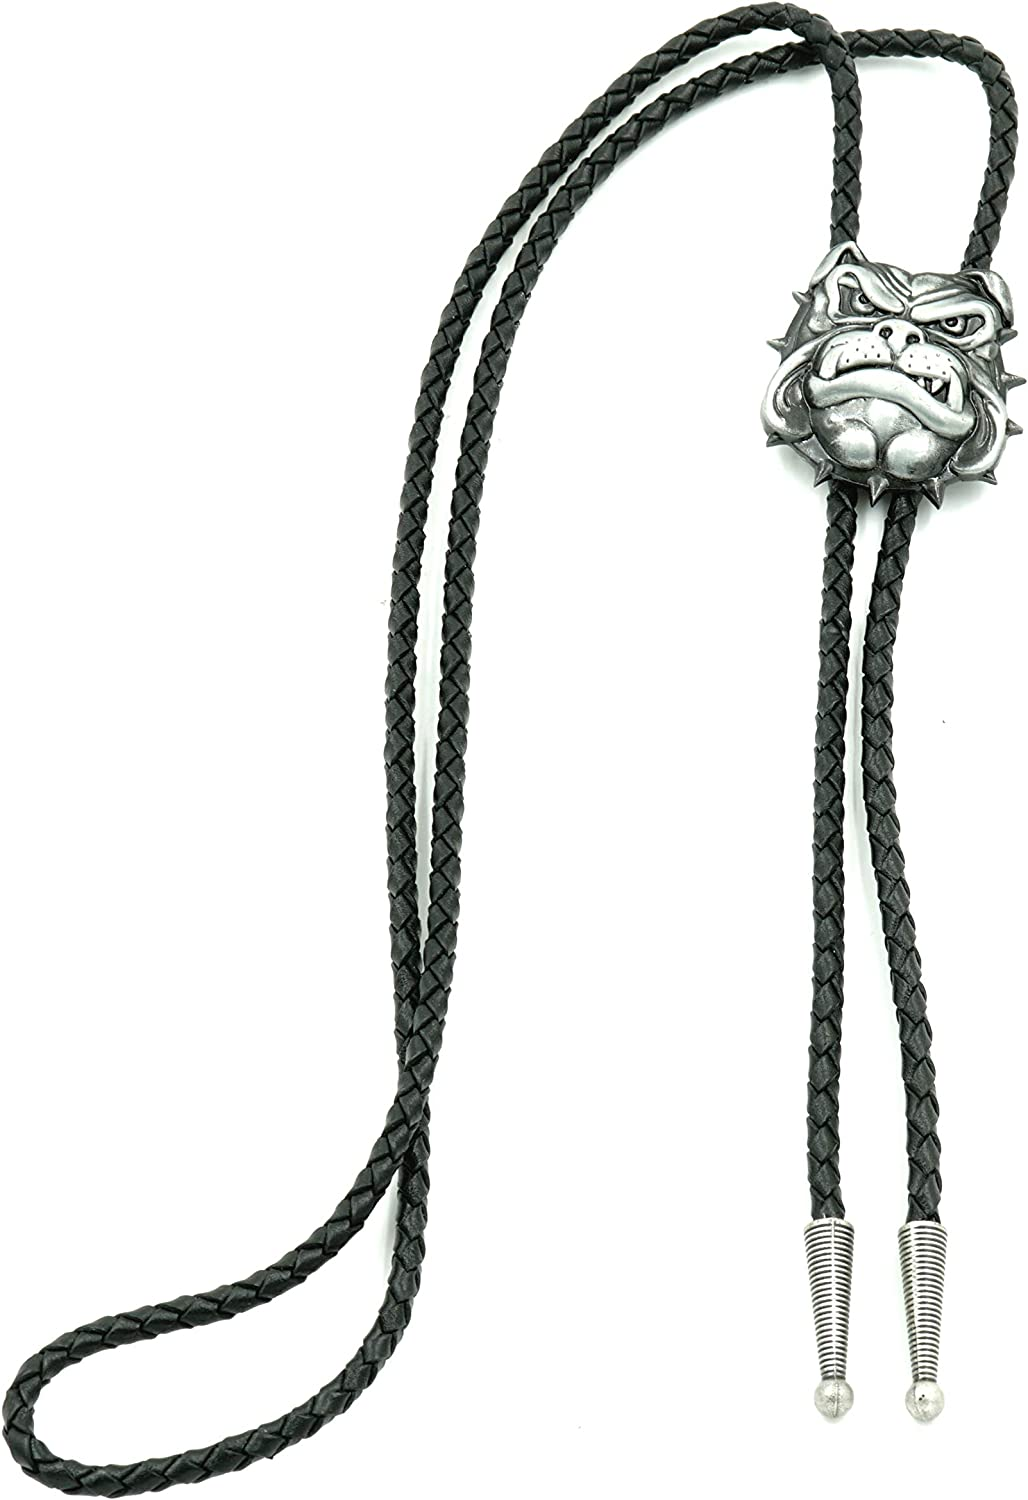 British Bull Cheap All items free shipping super special price Dog Head Western Leather Tie Bolo Neck